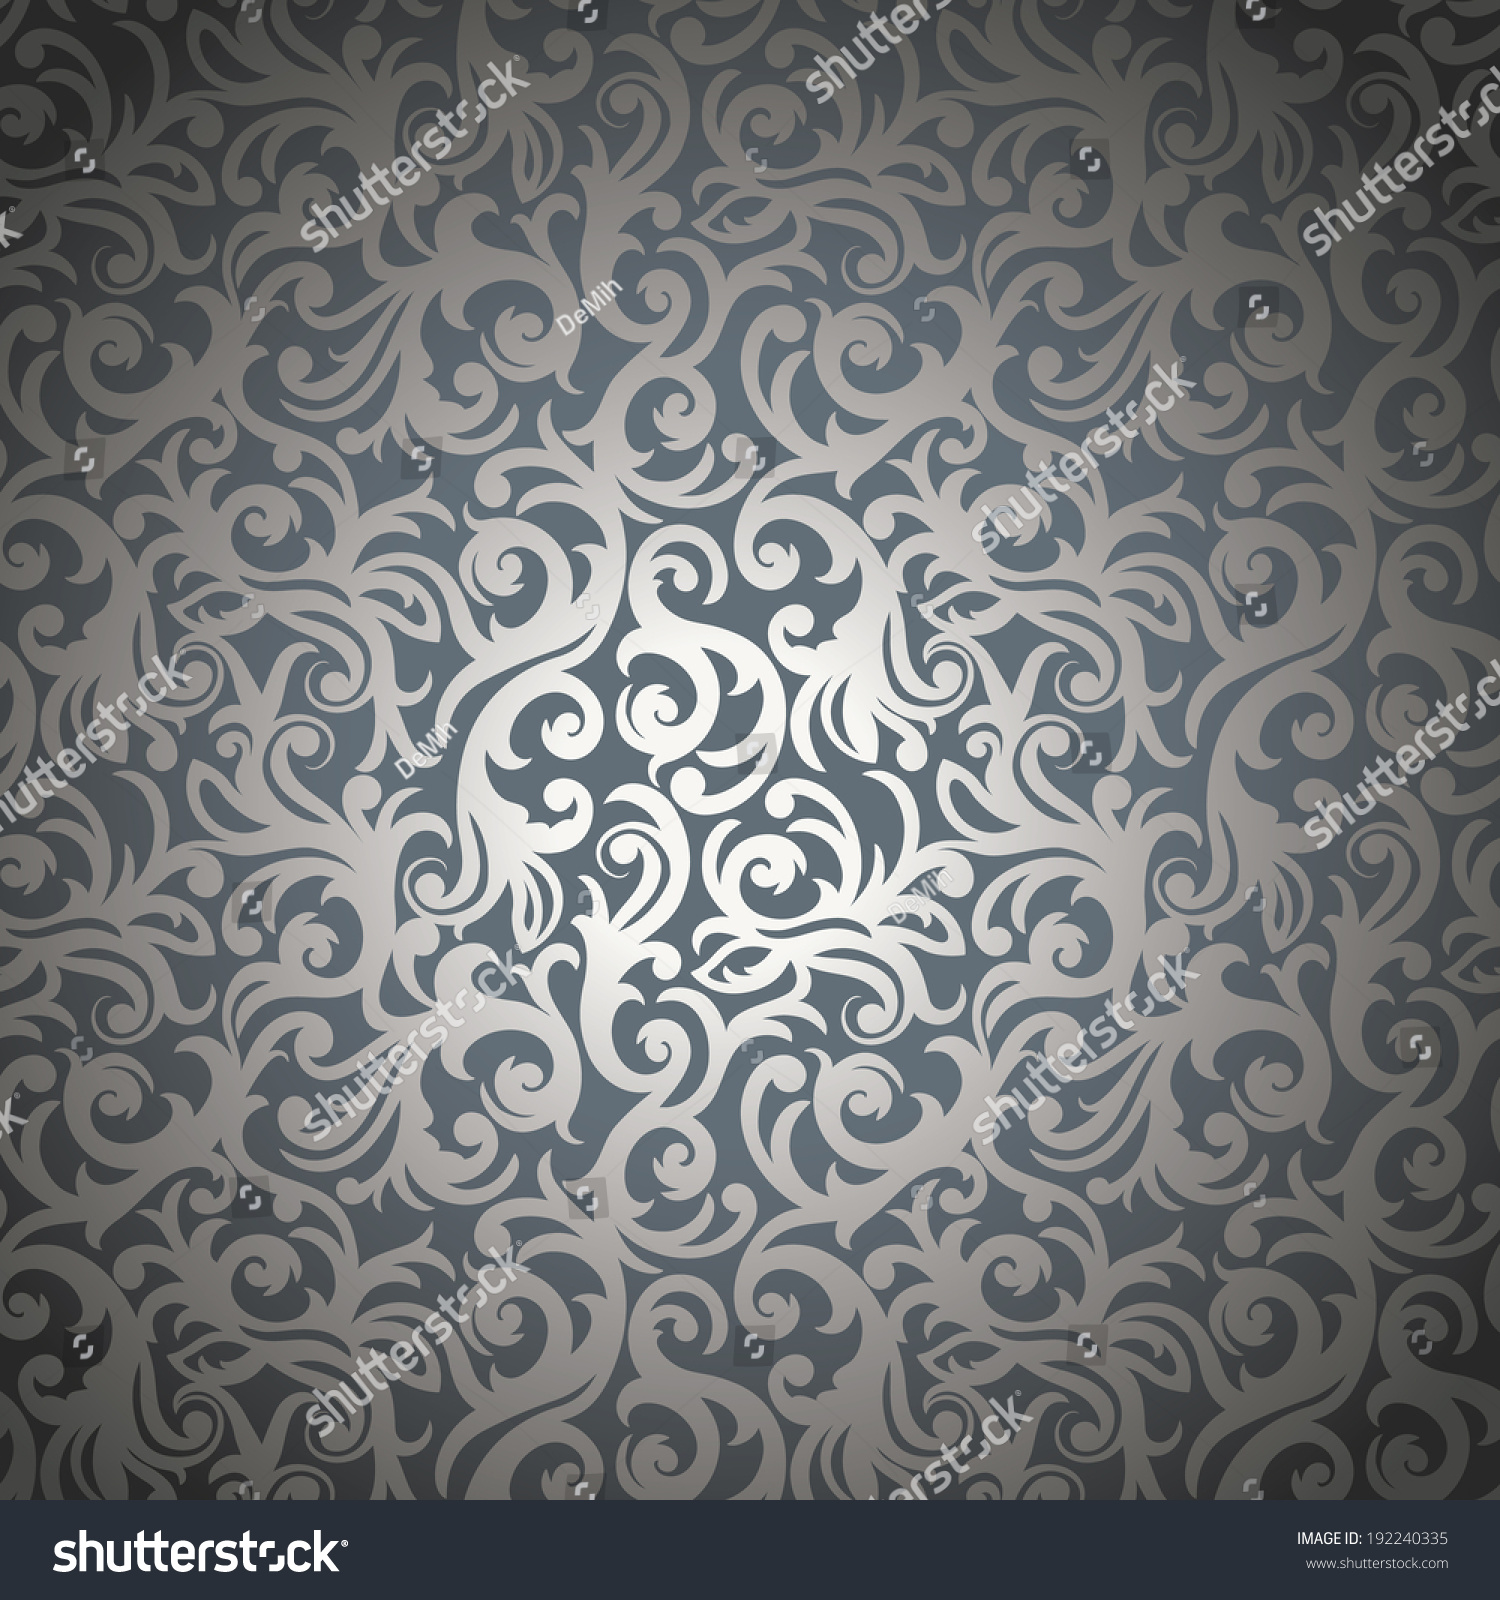 Elegant Stylish Abstract Floral Wallpaper Stock Vector Royalty